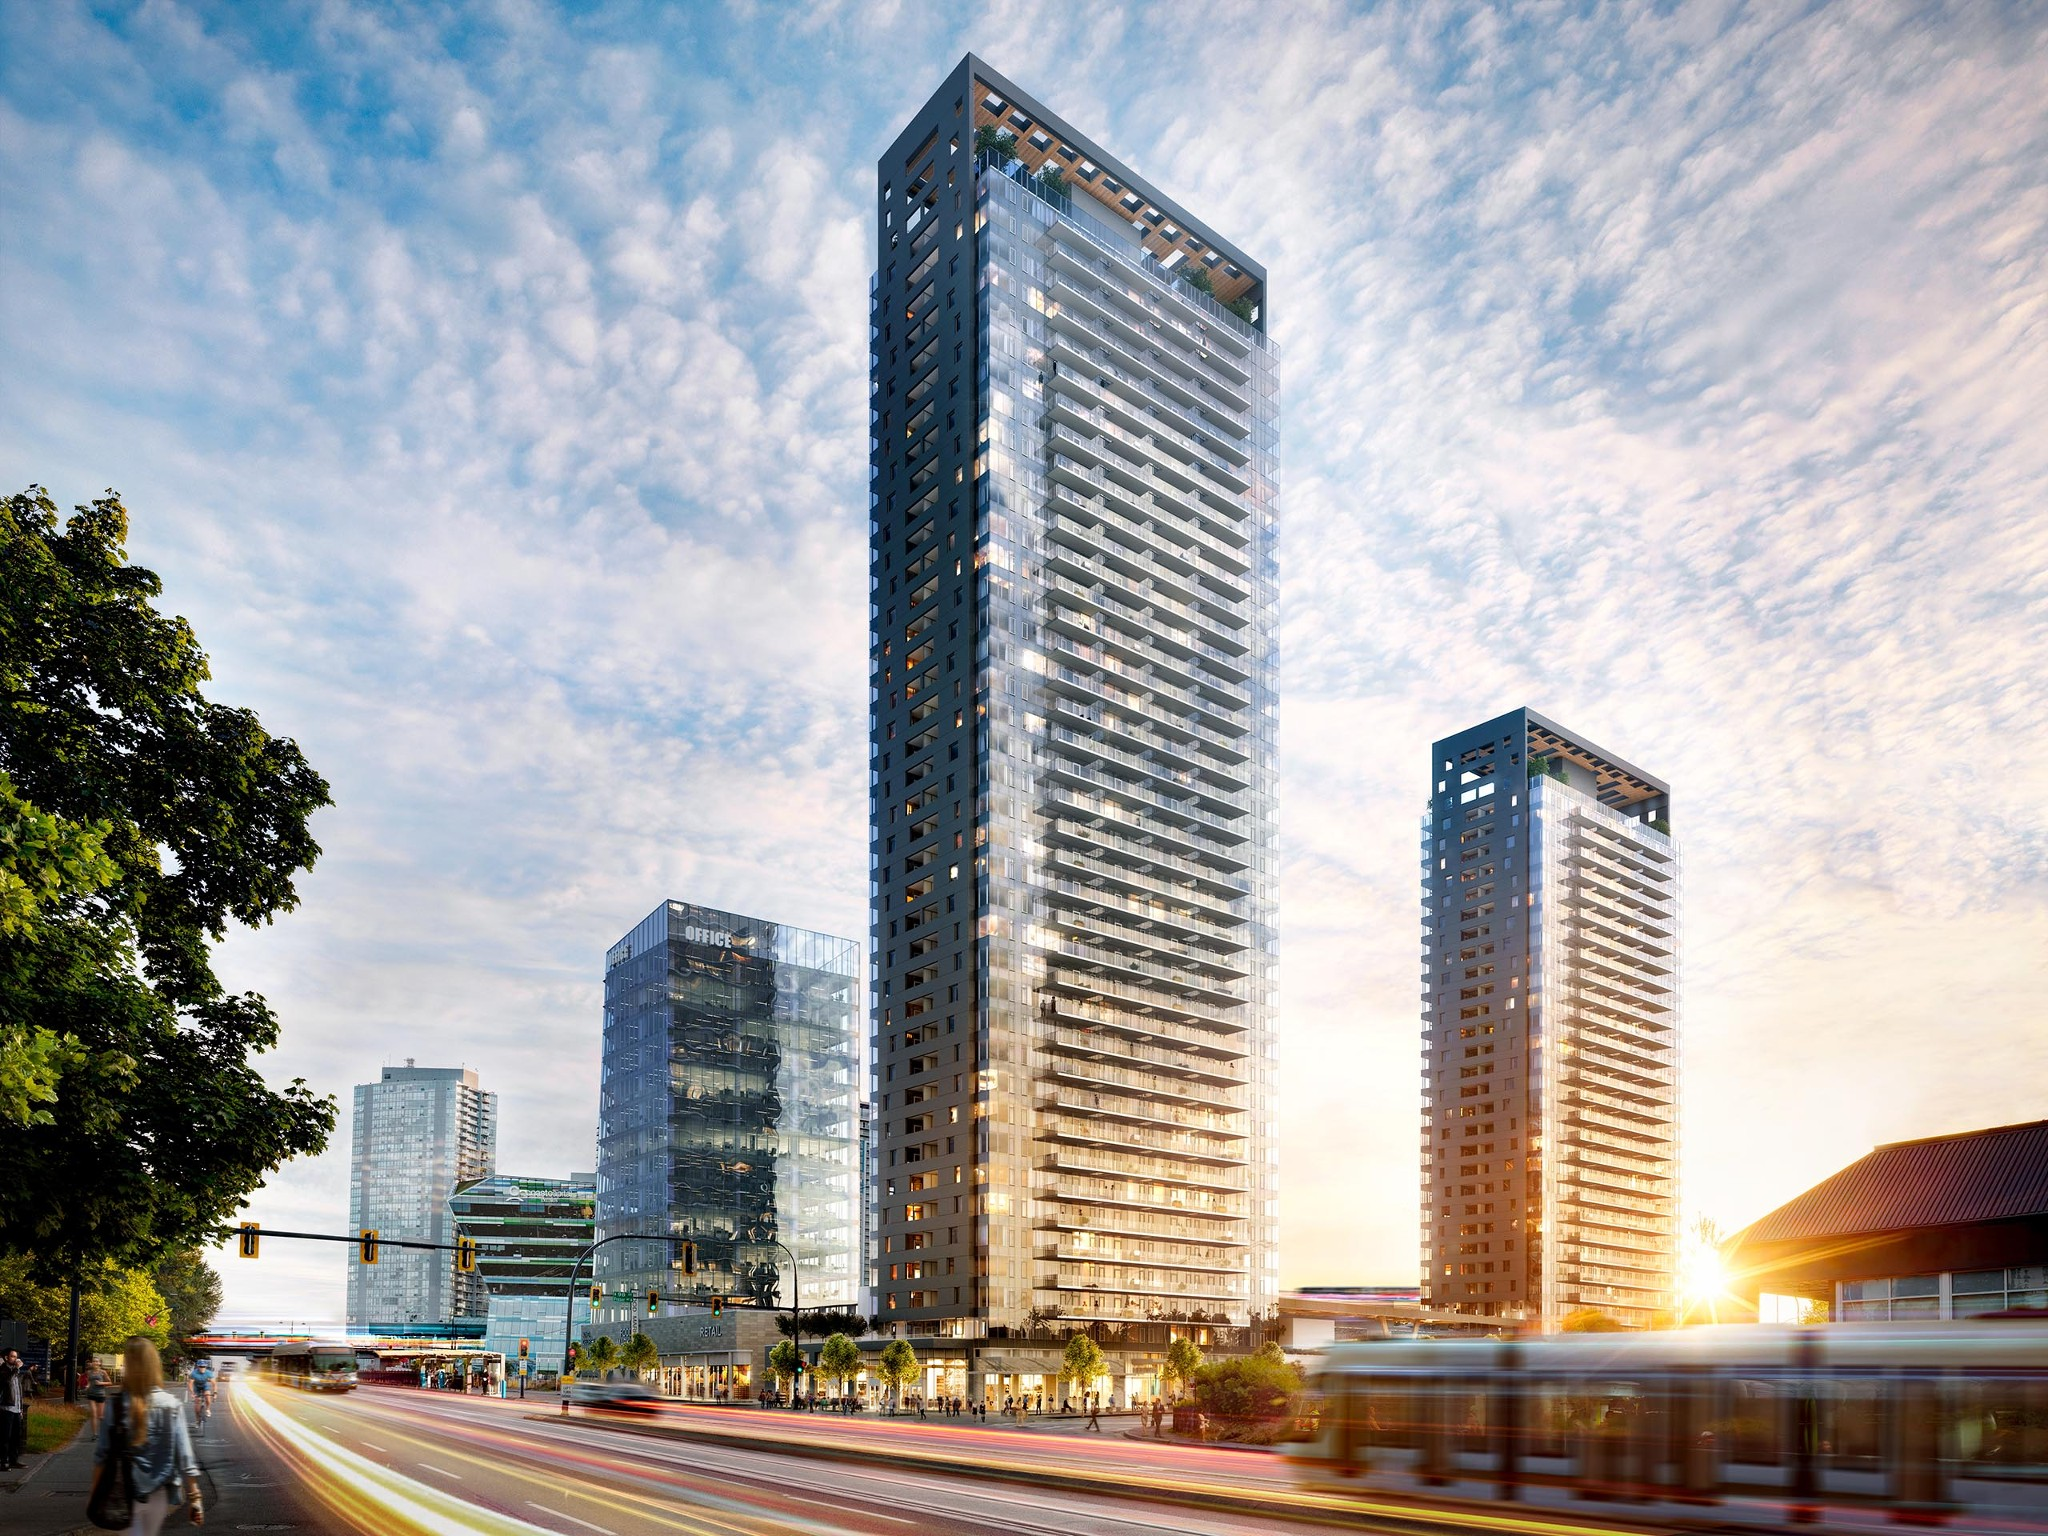 Main Photo: #810 at KING GEORGE HUB by PCI in : Surrey City Centre Condo  (Surrey)